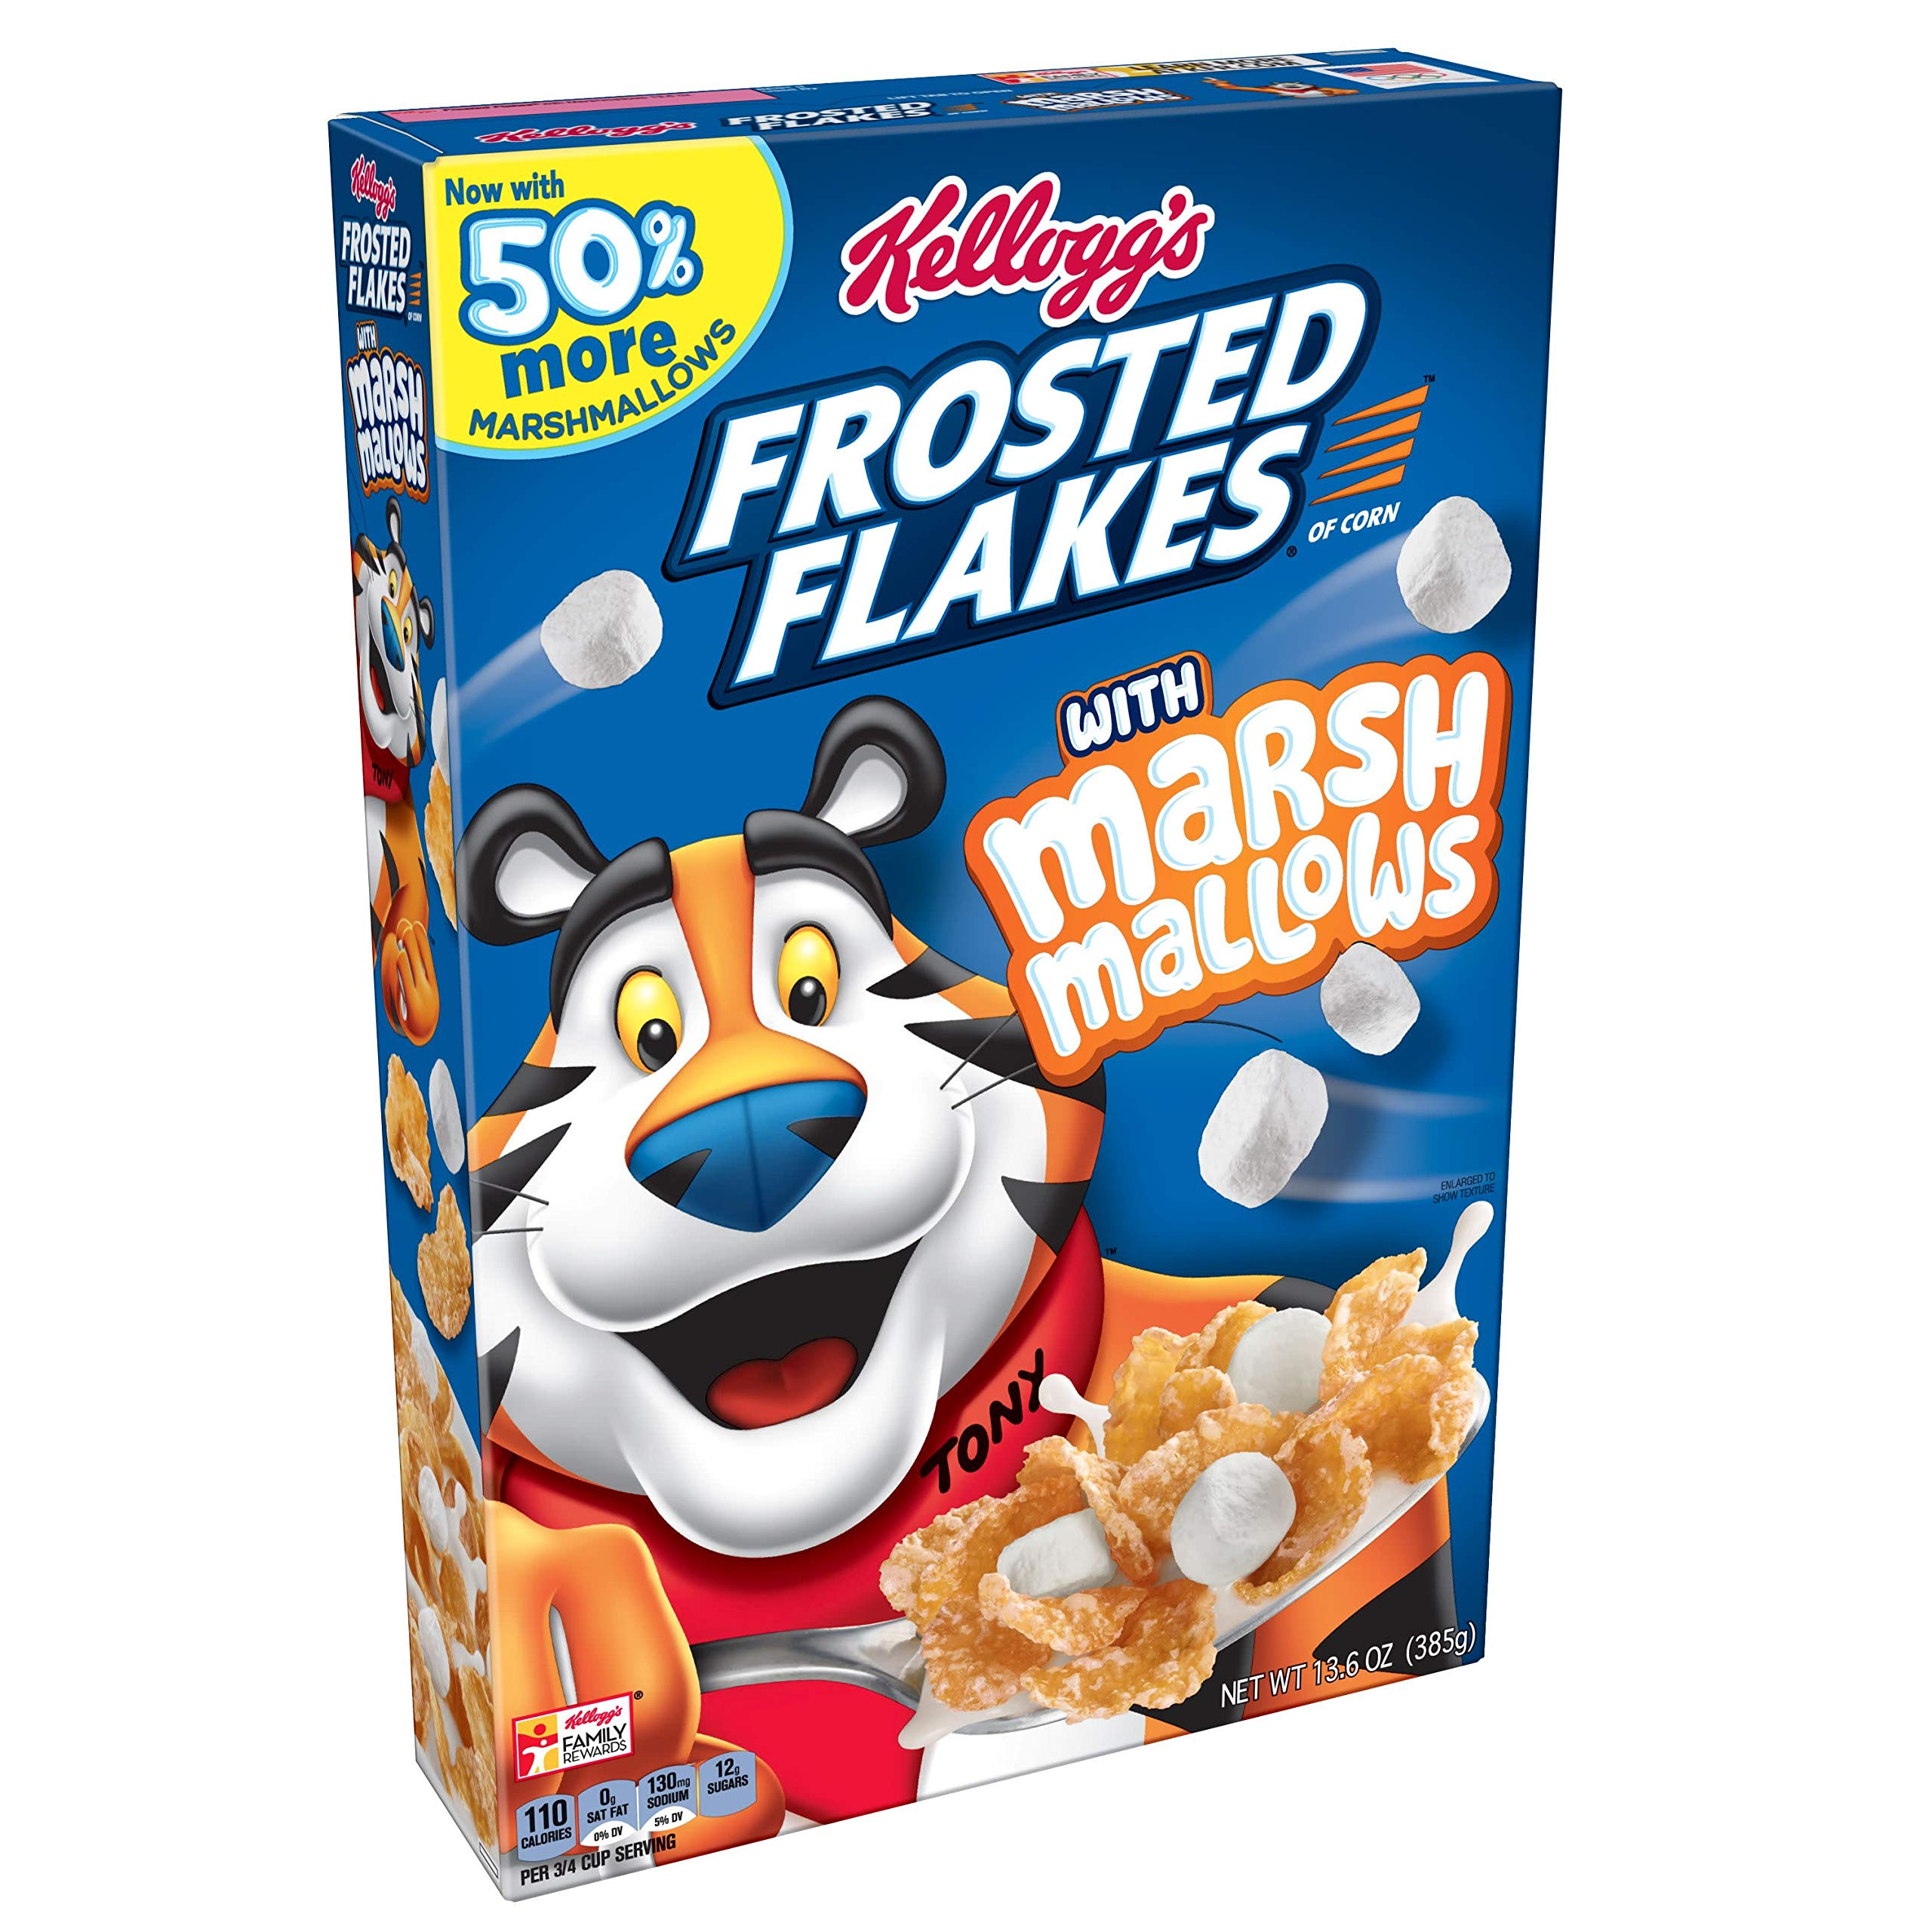 Kellogg's Breakfast Cereal, Frosted Flakes with Marshmallow, 13.6 oz Box(Pack of 12)